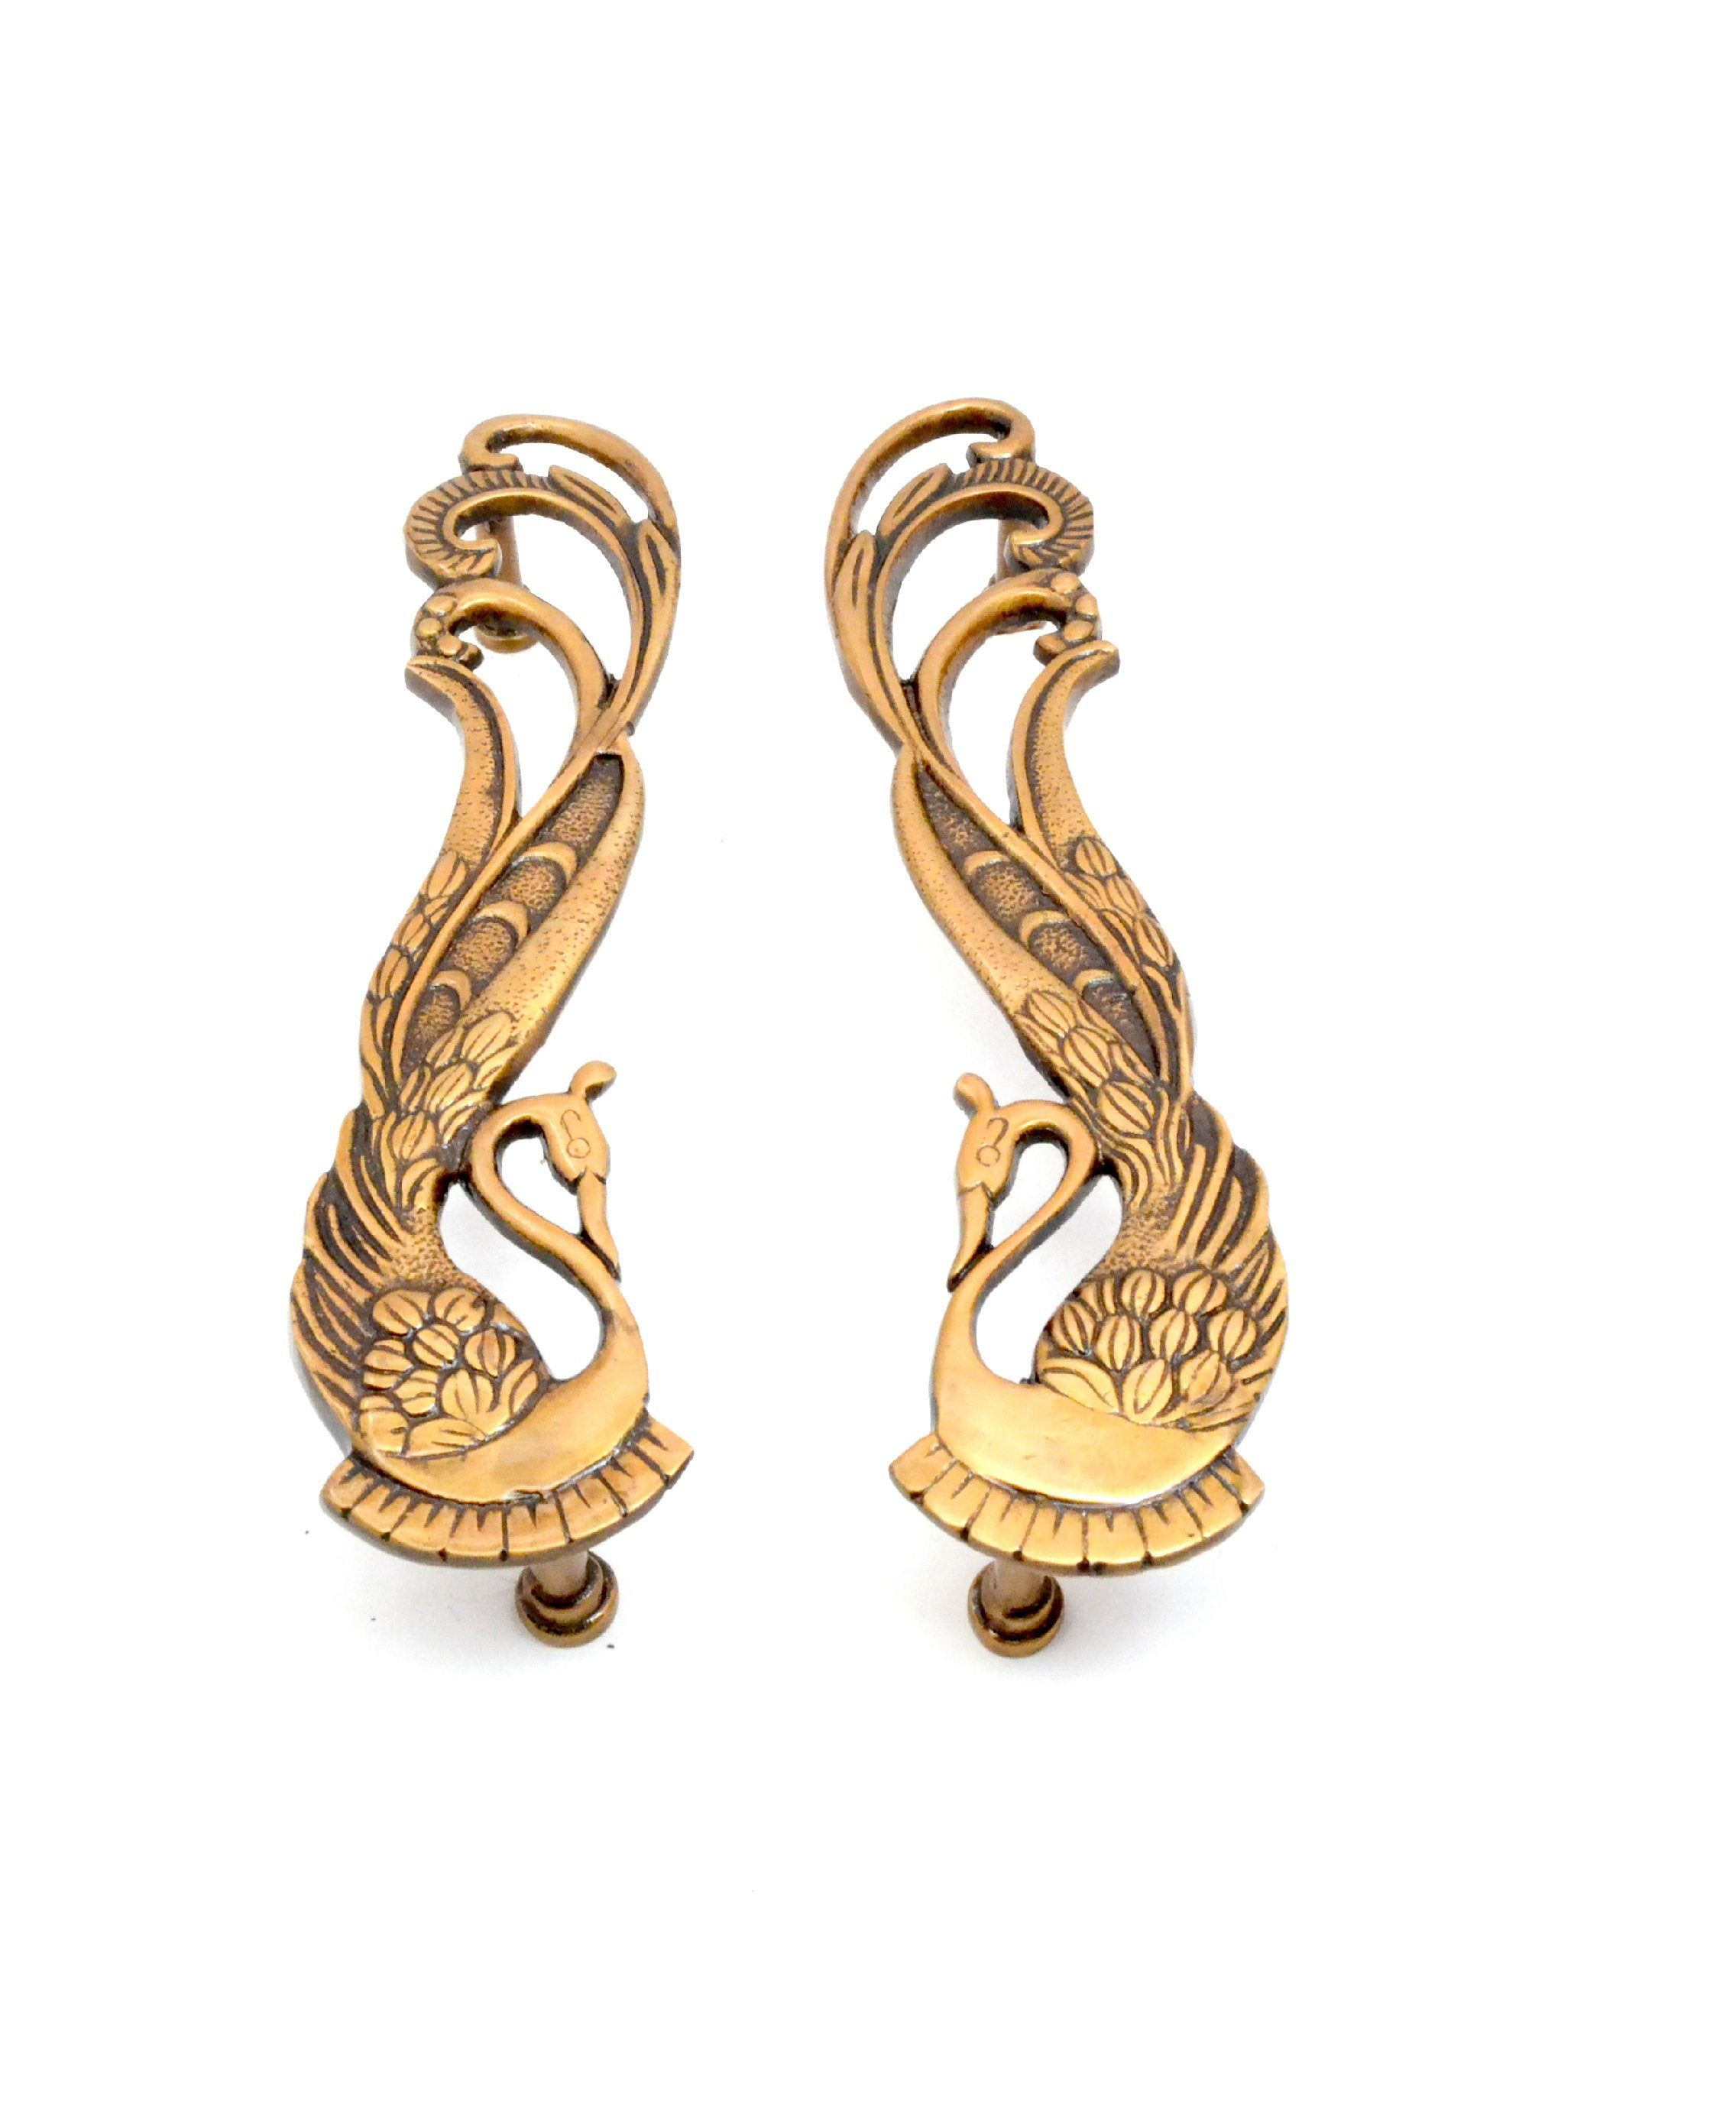 Peacock Design 11 Inches Brass Door Handle Pair Etsy In 2020 Brass Door Handles Door Handles Brass Door